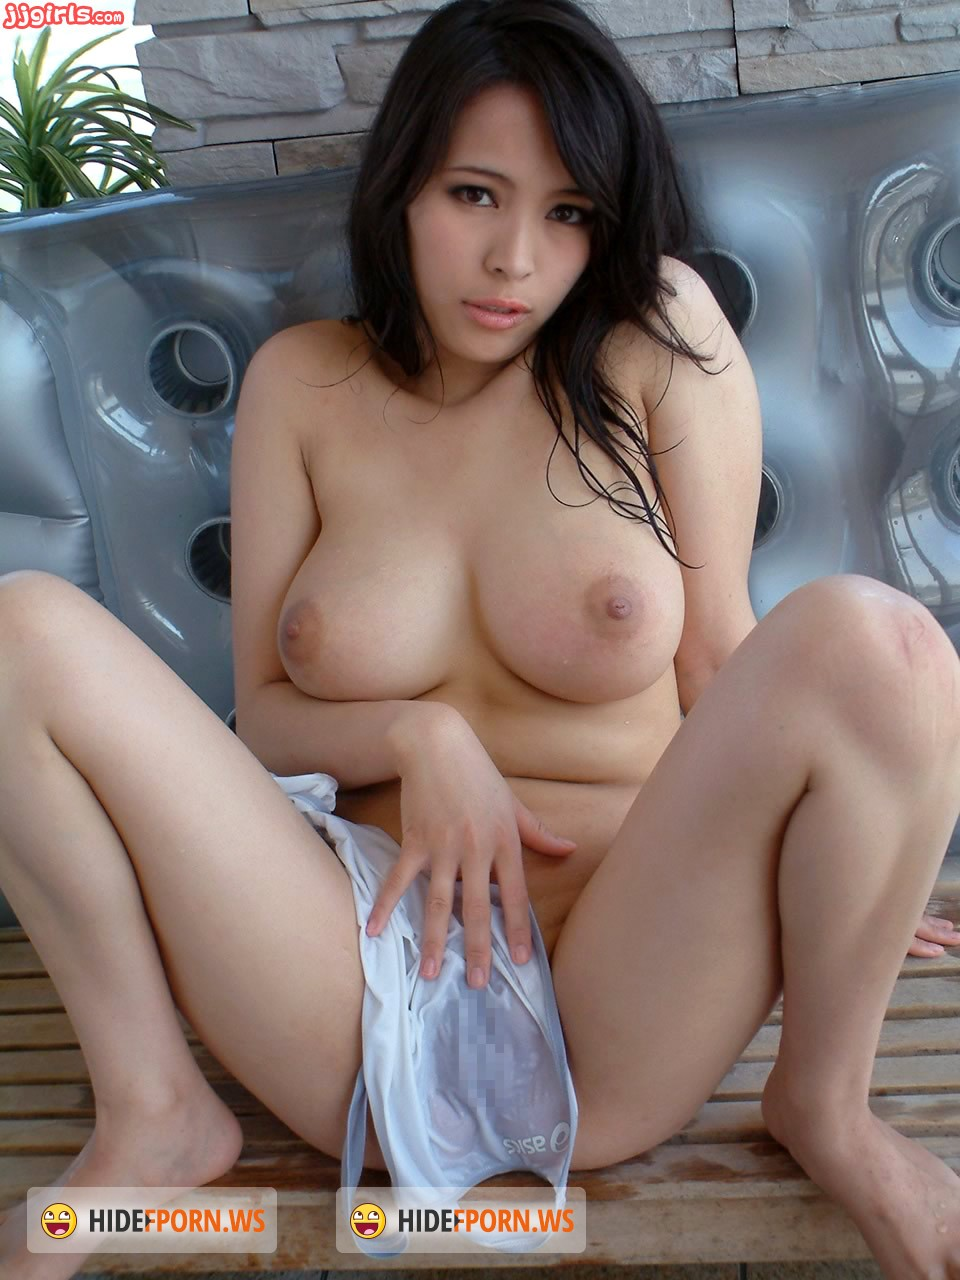 Villa pussy photo gallery adult tube